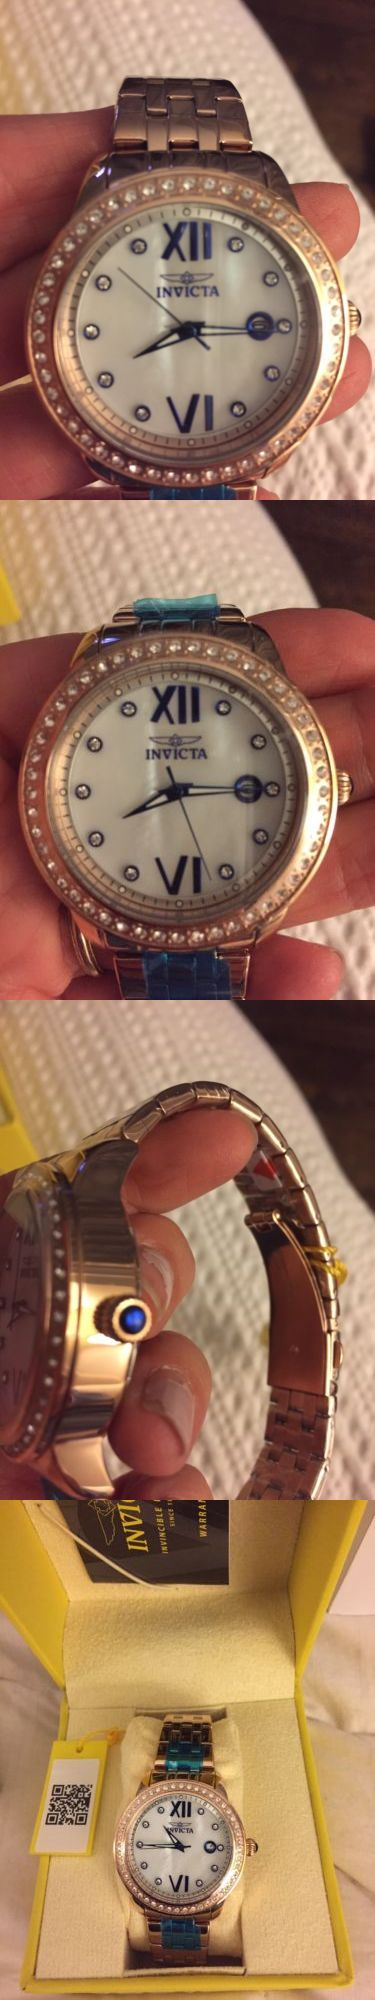 Other Jewelry and Watches 98863: Invicta Women S Rose Gold Watch Nib -> BUY IT NOW ONLY: $45 on eBay!